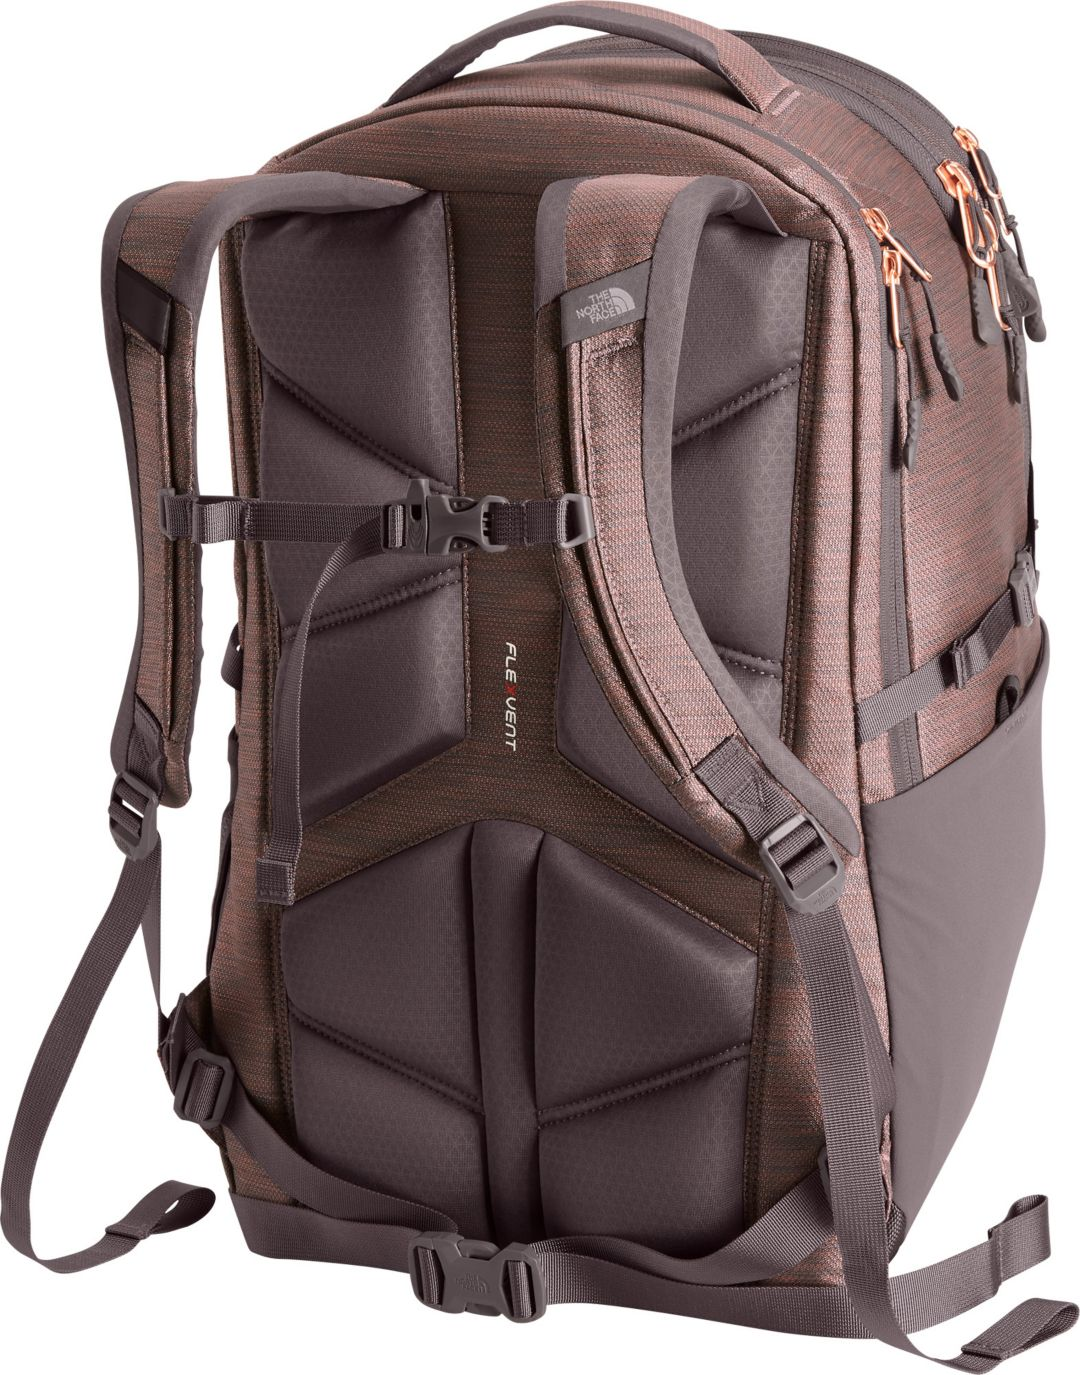 706826537 The North Face Women's Surge Luxe Backpack